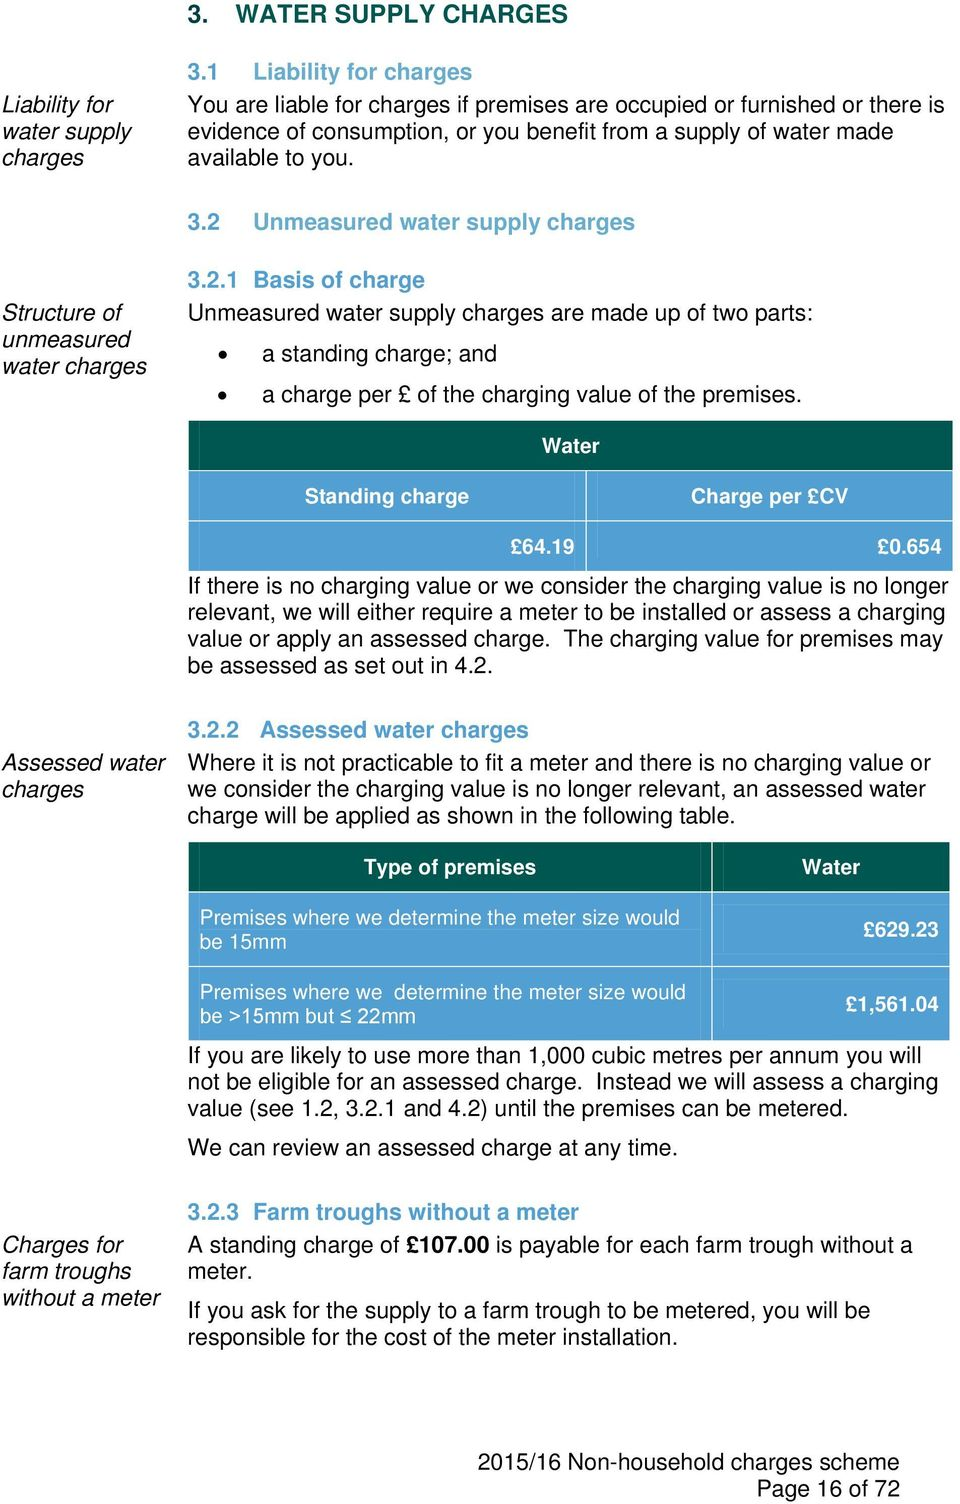 2 Unmeasured water supply charges Structure of unmeasured water charges 3.2.1 Basis of charge Unmeasured water supply charges are made up of two parts: a standing charge; and a charge per of the charging value of the premises.